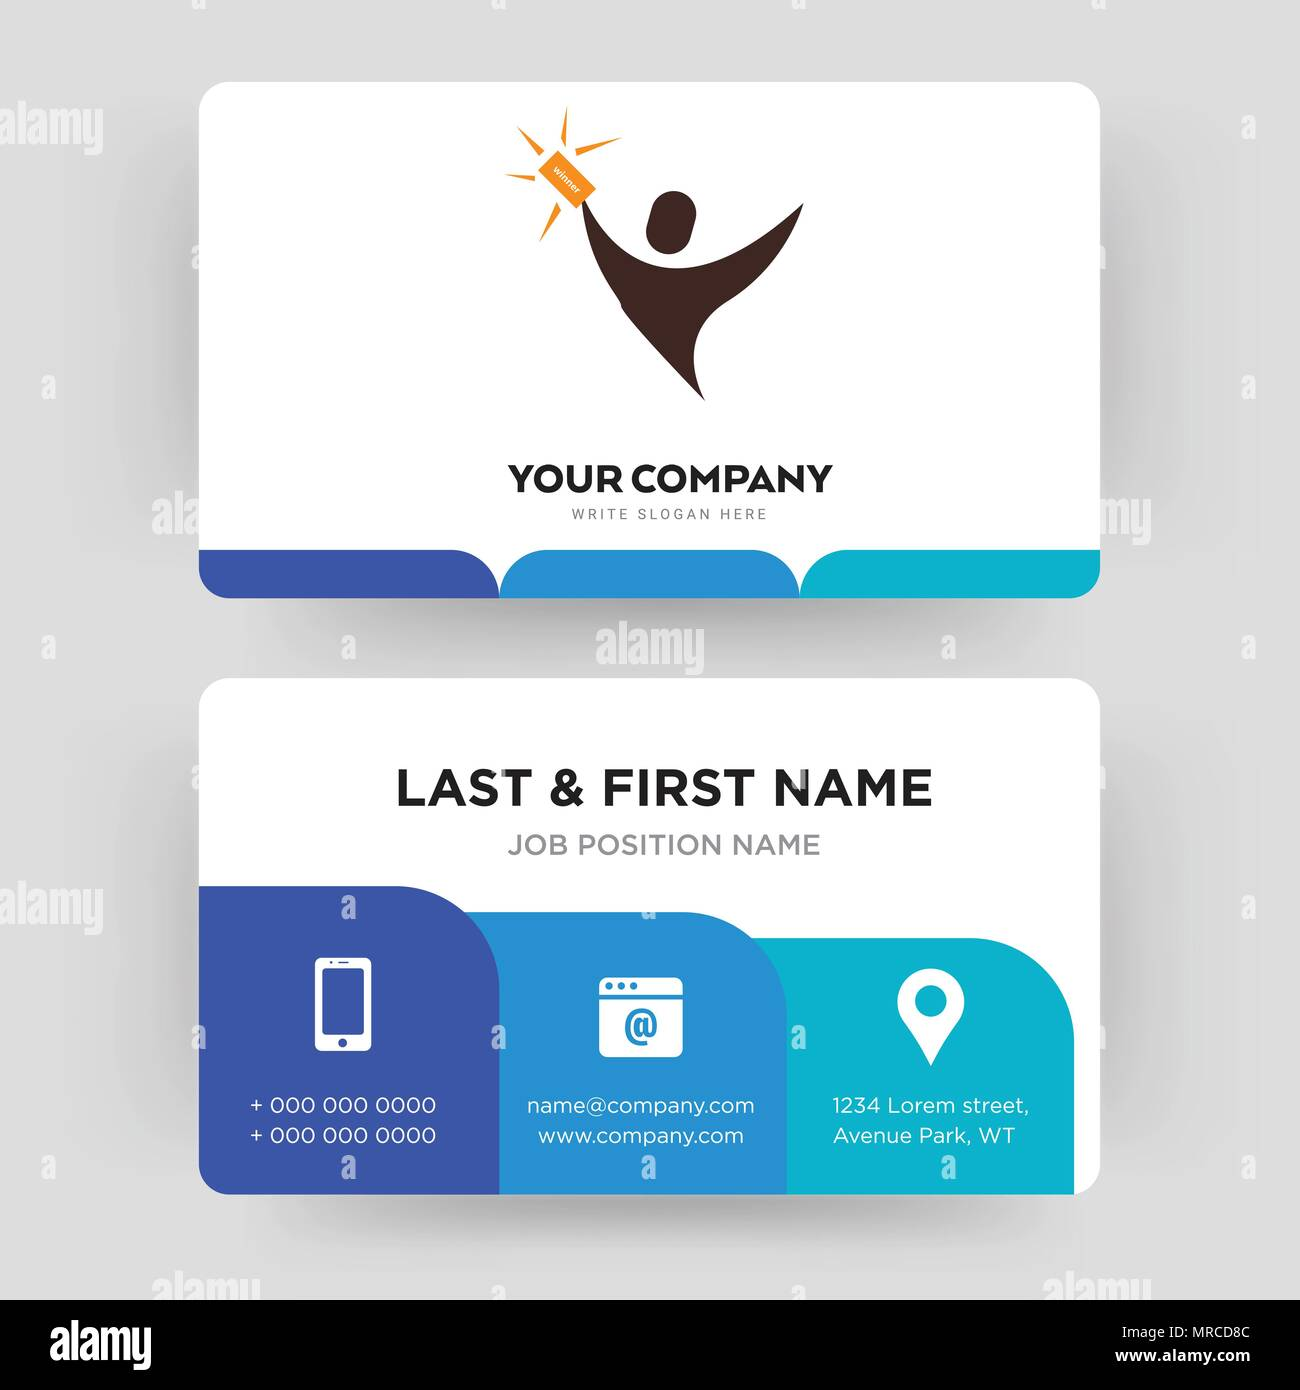 Lucky draw business card design template visiting for your company lucky draw business card design template visiting for your company modern creative and clean identity card vector reheart Choice Image